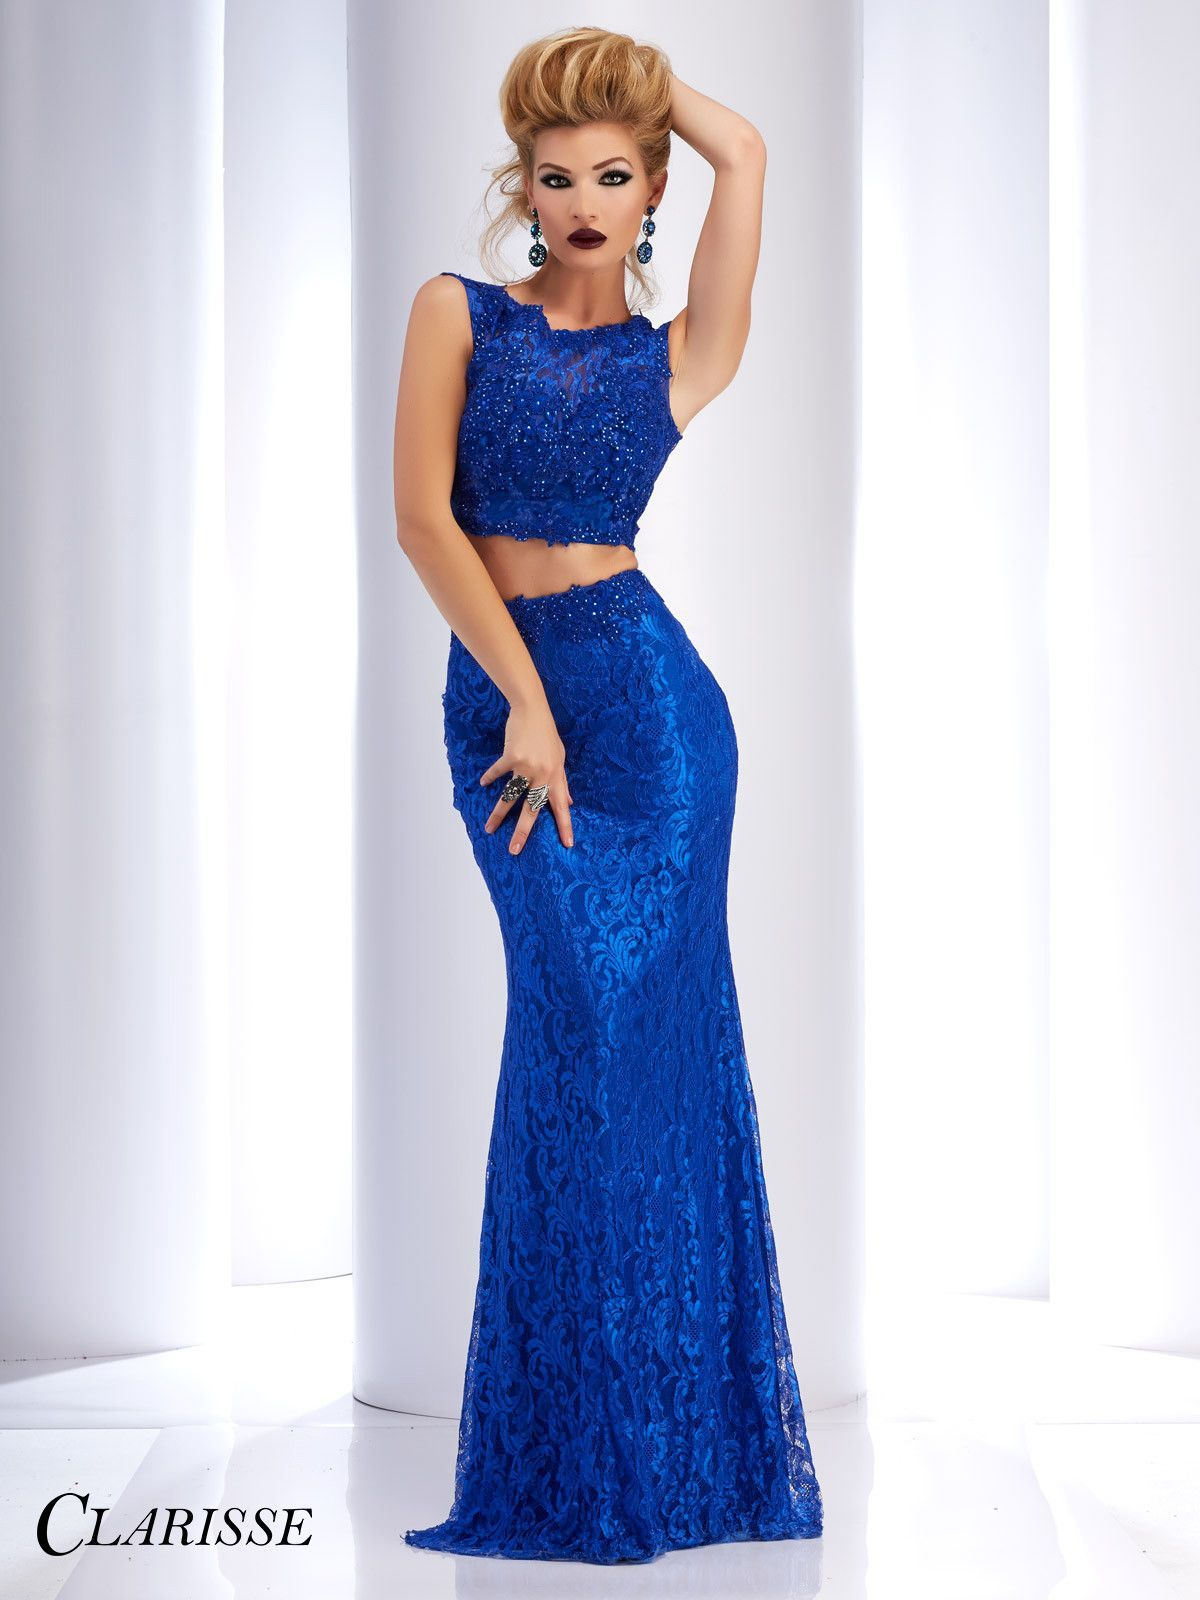 Clarisse prom royal lace twopiece prom dress eye candy